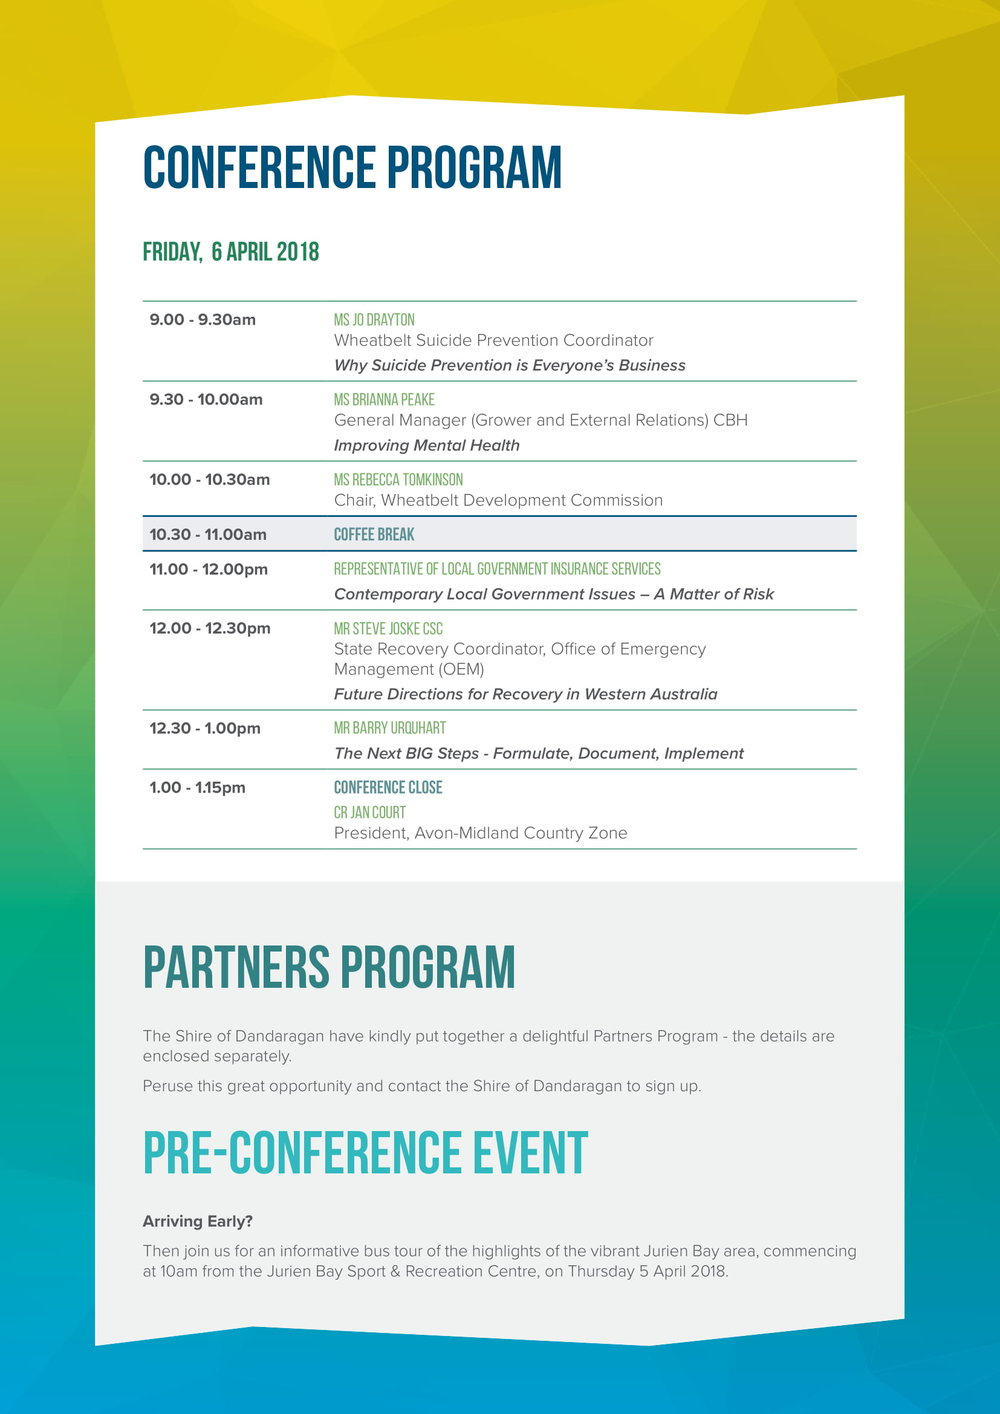 Wheatbelt 18 - Conference Program-5.jpg